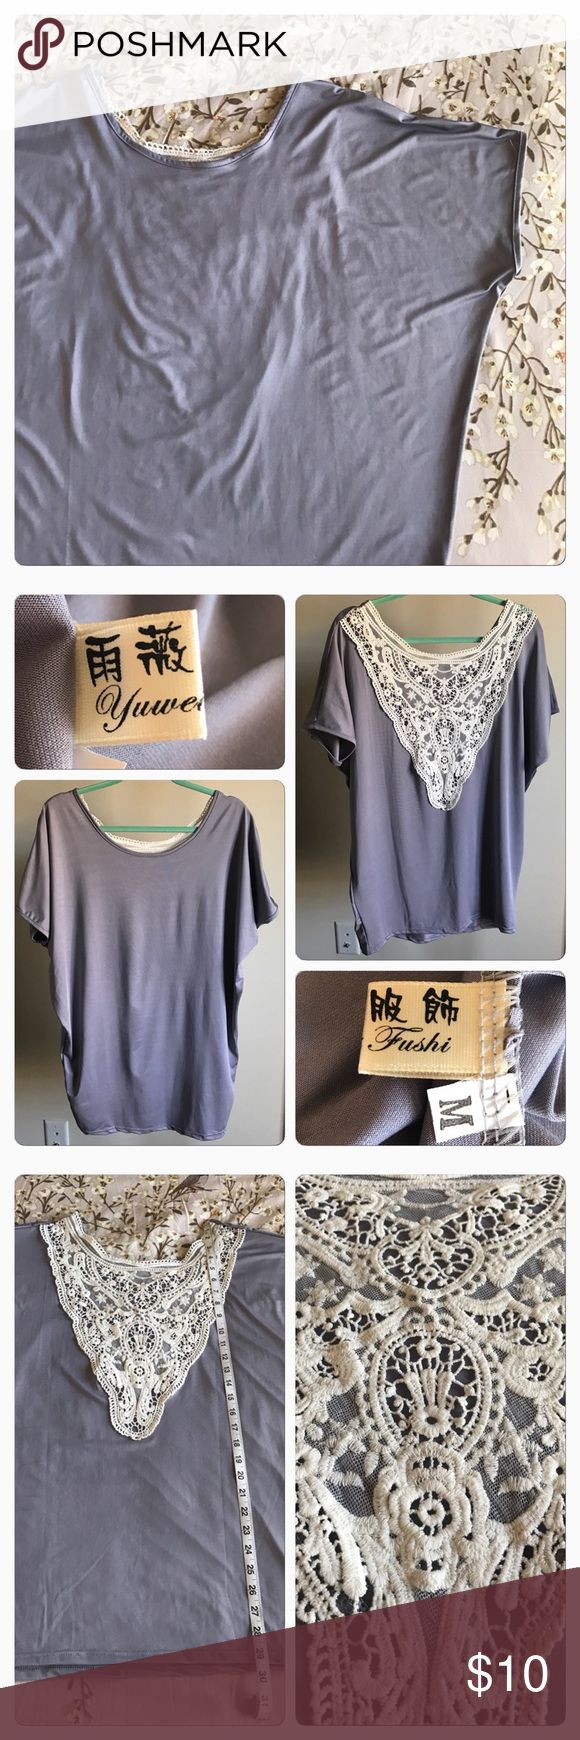 Yuwei Fushi Lace Batwing Top This is a rePosh. It arrived NWOT and to my knowledge has never been washed or worn. It is in perfect condition. The fabric feels sleek and silky and appears to be grayish purple in color. According to an original listing online, this top is made out of cotton. Yuwei Fushi Tops